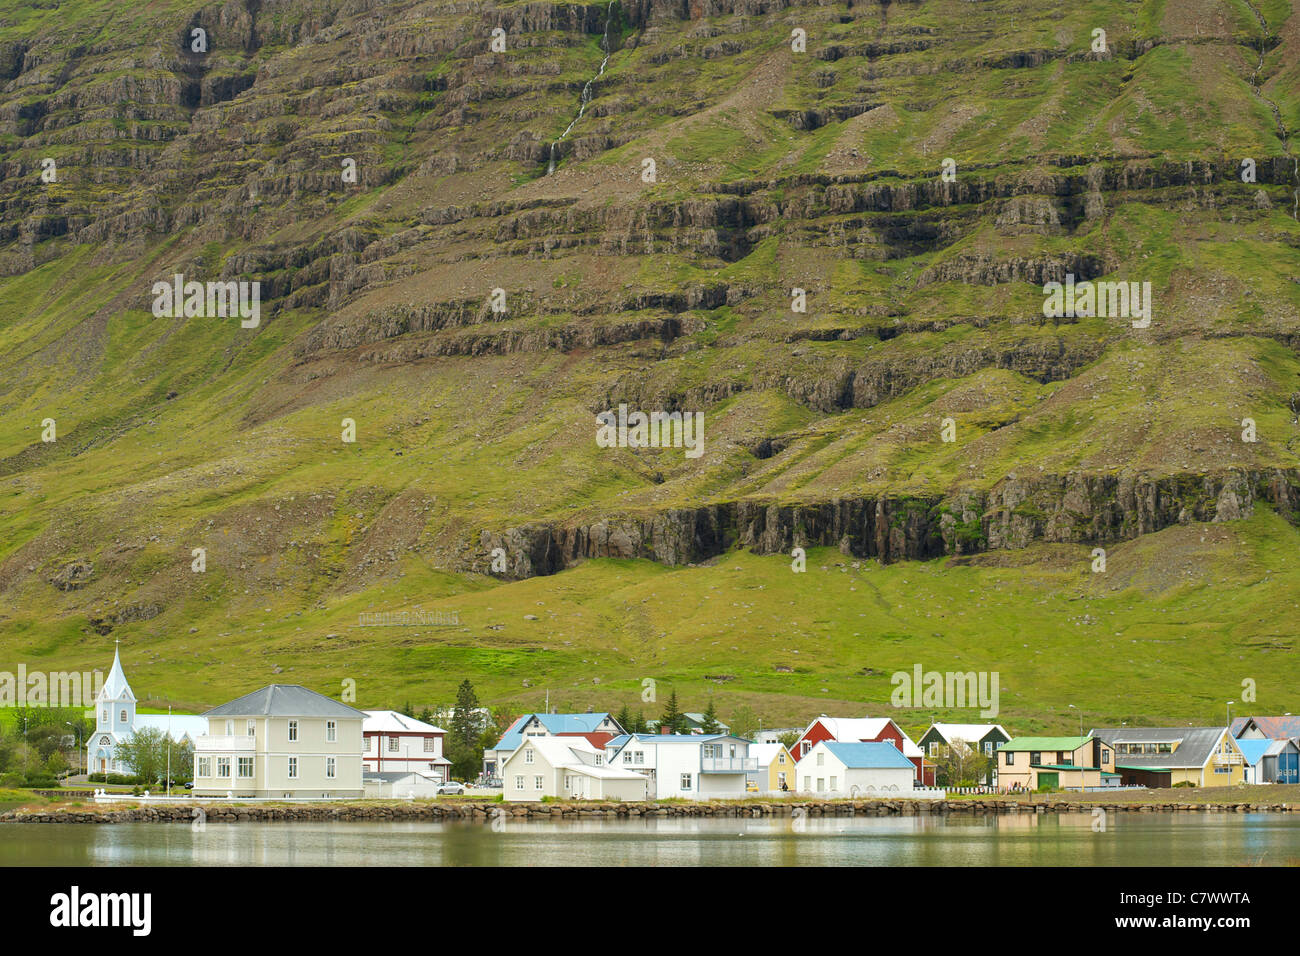 Houses in Seydisfjordur, a fjord in east Iceland. - Stock Image